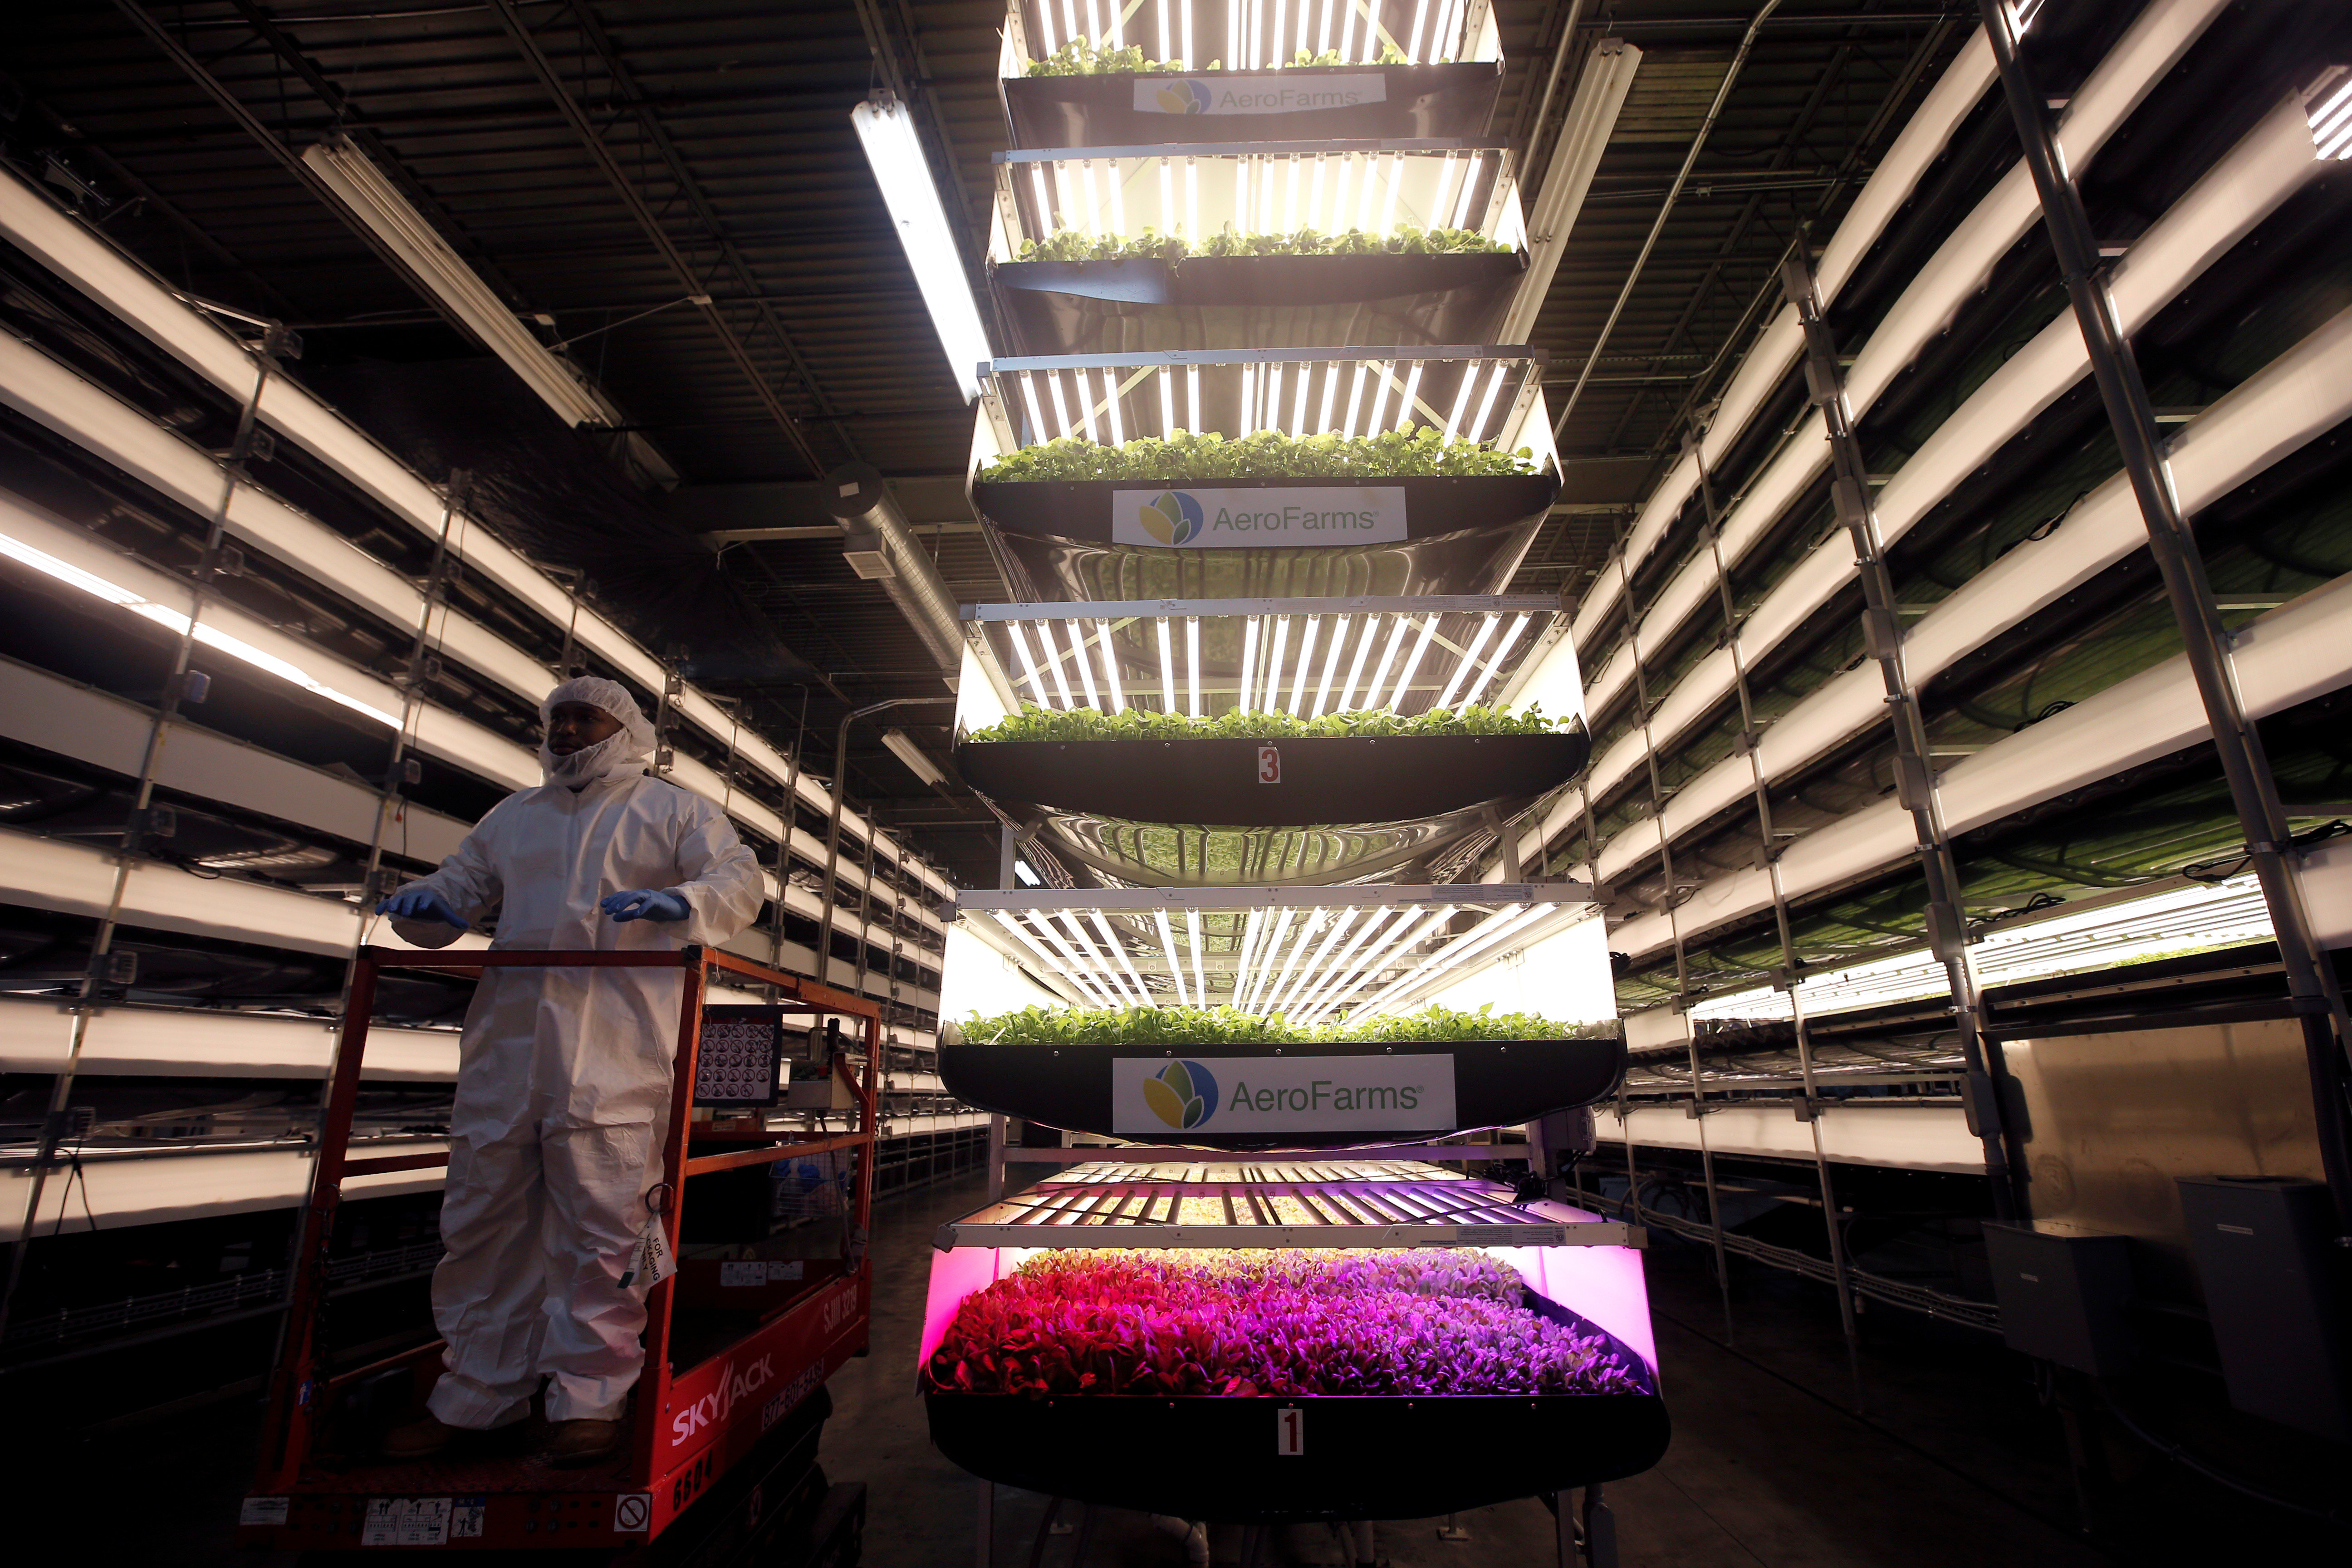 A worker rides a lift past racks of vertical farming beds lit with light emitting diode